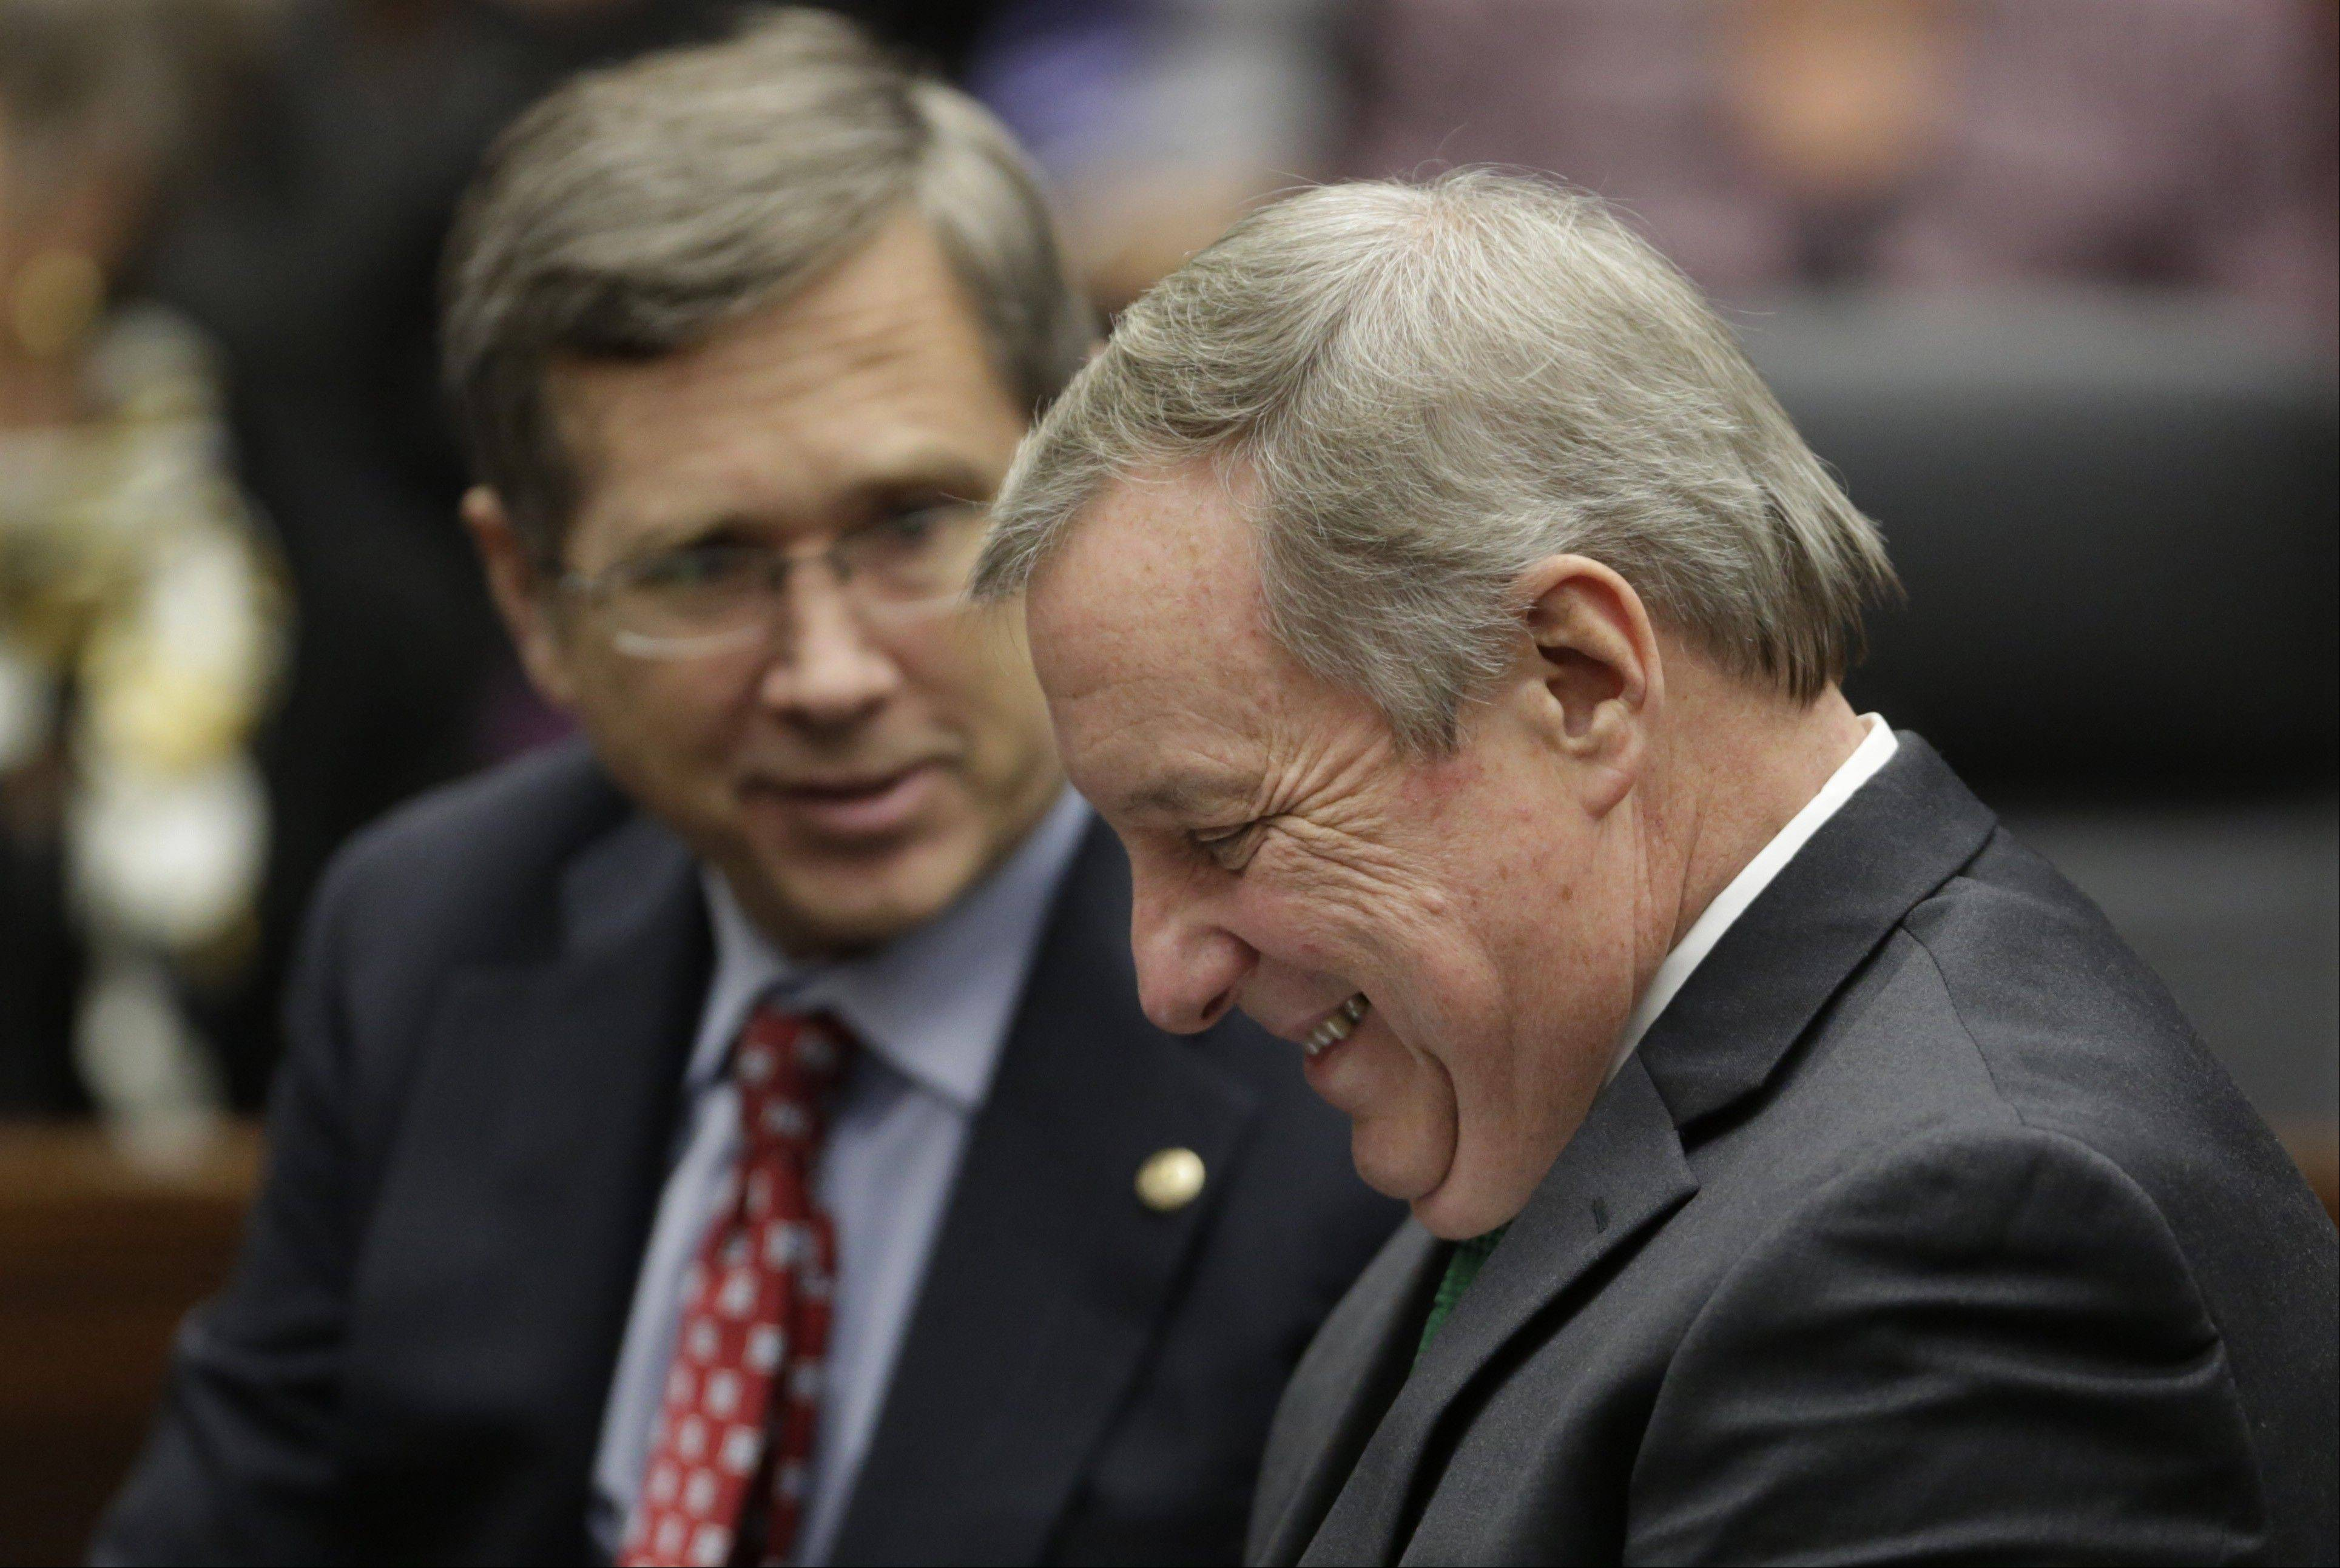 In this Nov. 25, 2013 photo, U.S. Sens. Dick Durbin, an Illinois Democrat, left, and Mark Kirk, an Illinois Republican, laughing together before Zachary T. Fardon, takes a ceremonial oath as United States attorney for the Northern District of Illinois in Chicago. On Capitol Hill, where the partisan divide runs so deep it shut down the government, it can be unusual for members of opposing parties to have close relationships. Both men say they�ve always had an amicable relationship. But their friendship truly solidified after Kirk suffered a stroke last year and they began a series of what the junior senator calls �heart-to-hearts� about how they could do their jobs better by working together.